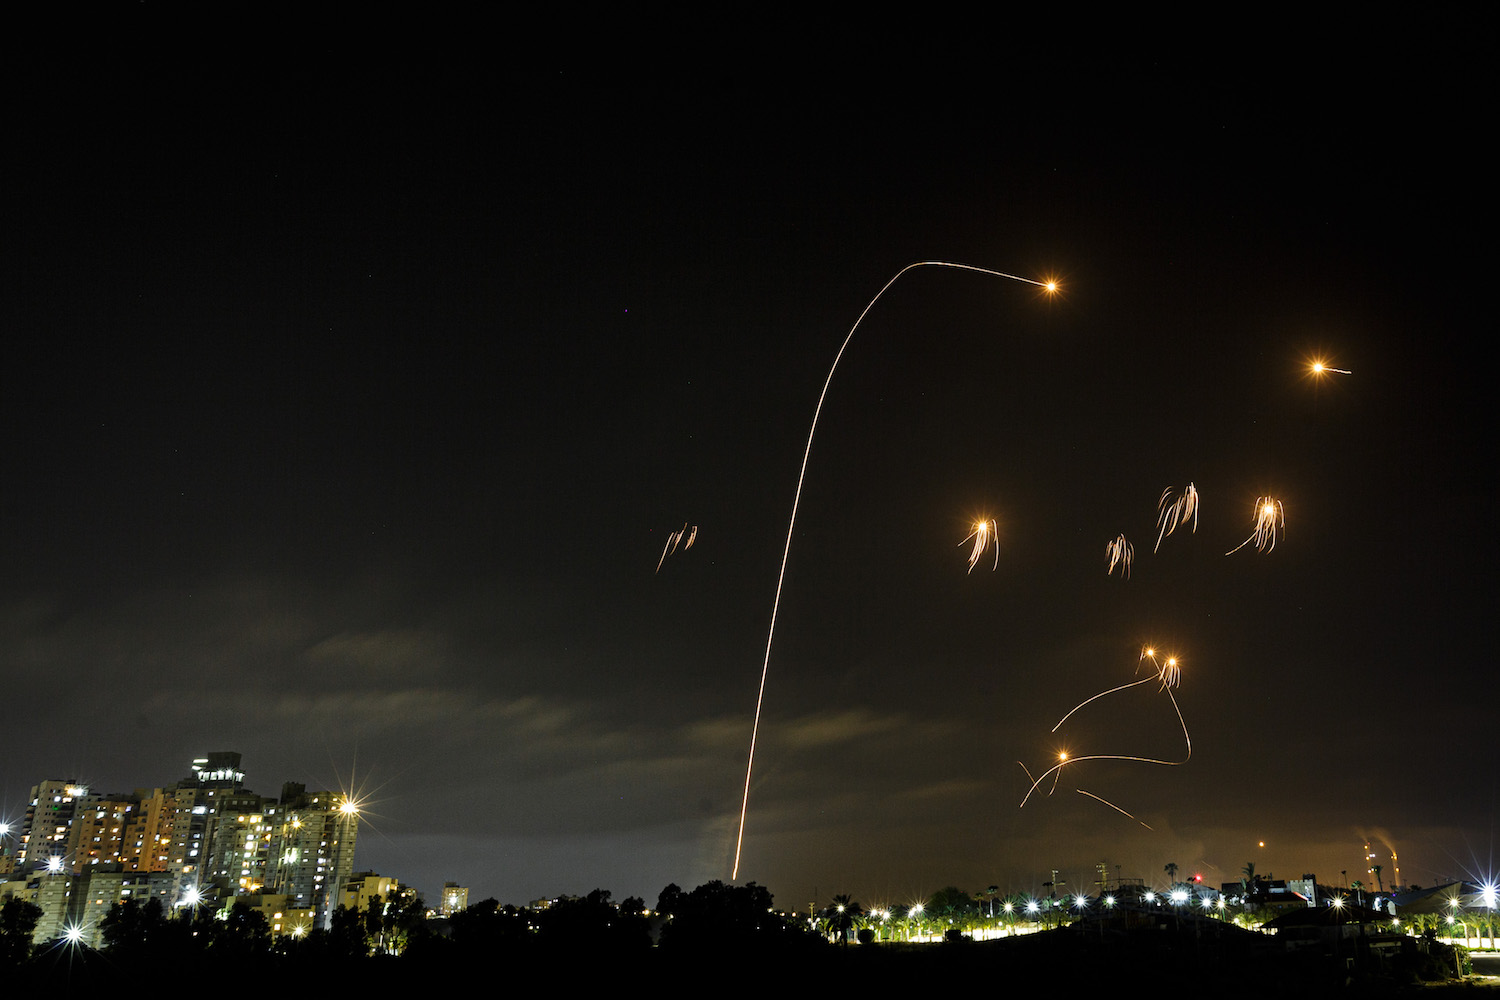 Rockets fired from the Gaza Strip toward Israel are intercepted by the Iron Dome, Ashkelon, Israel, May 10, 2021. (Edi Israel/Flash90)